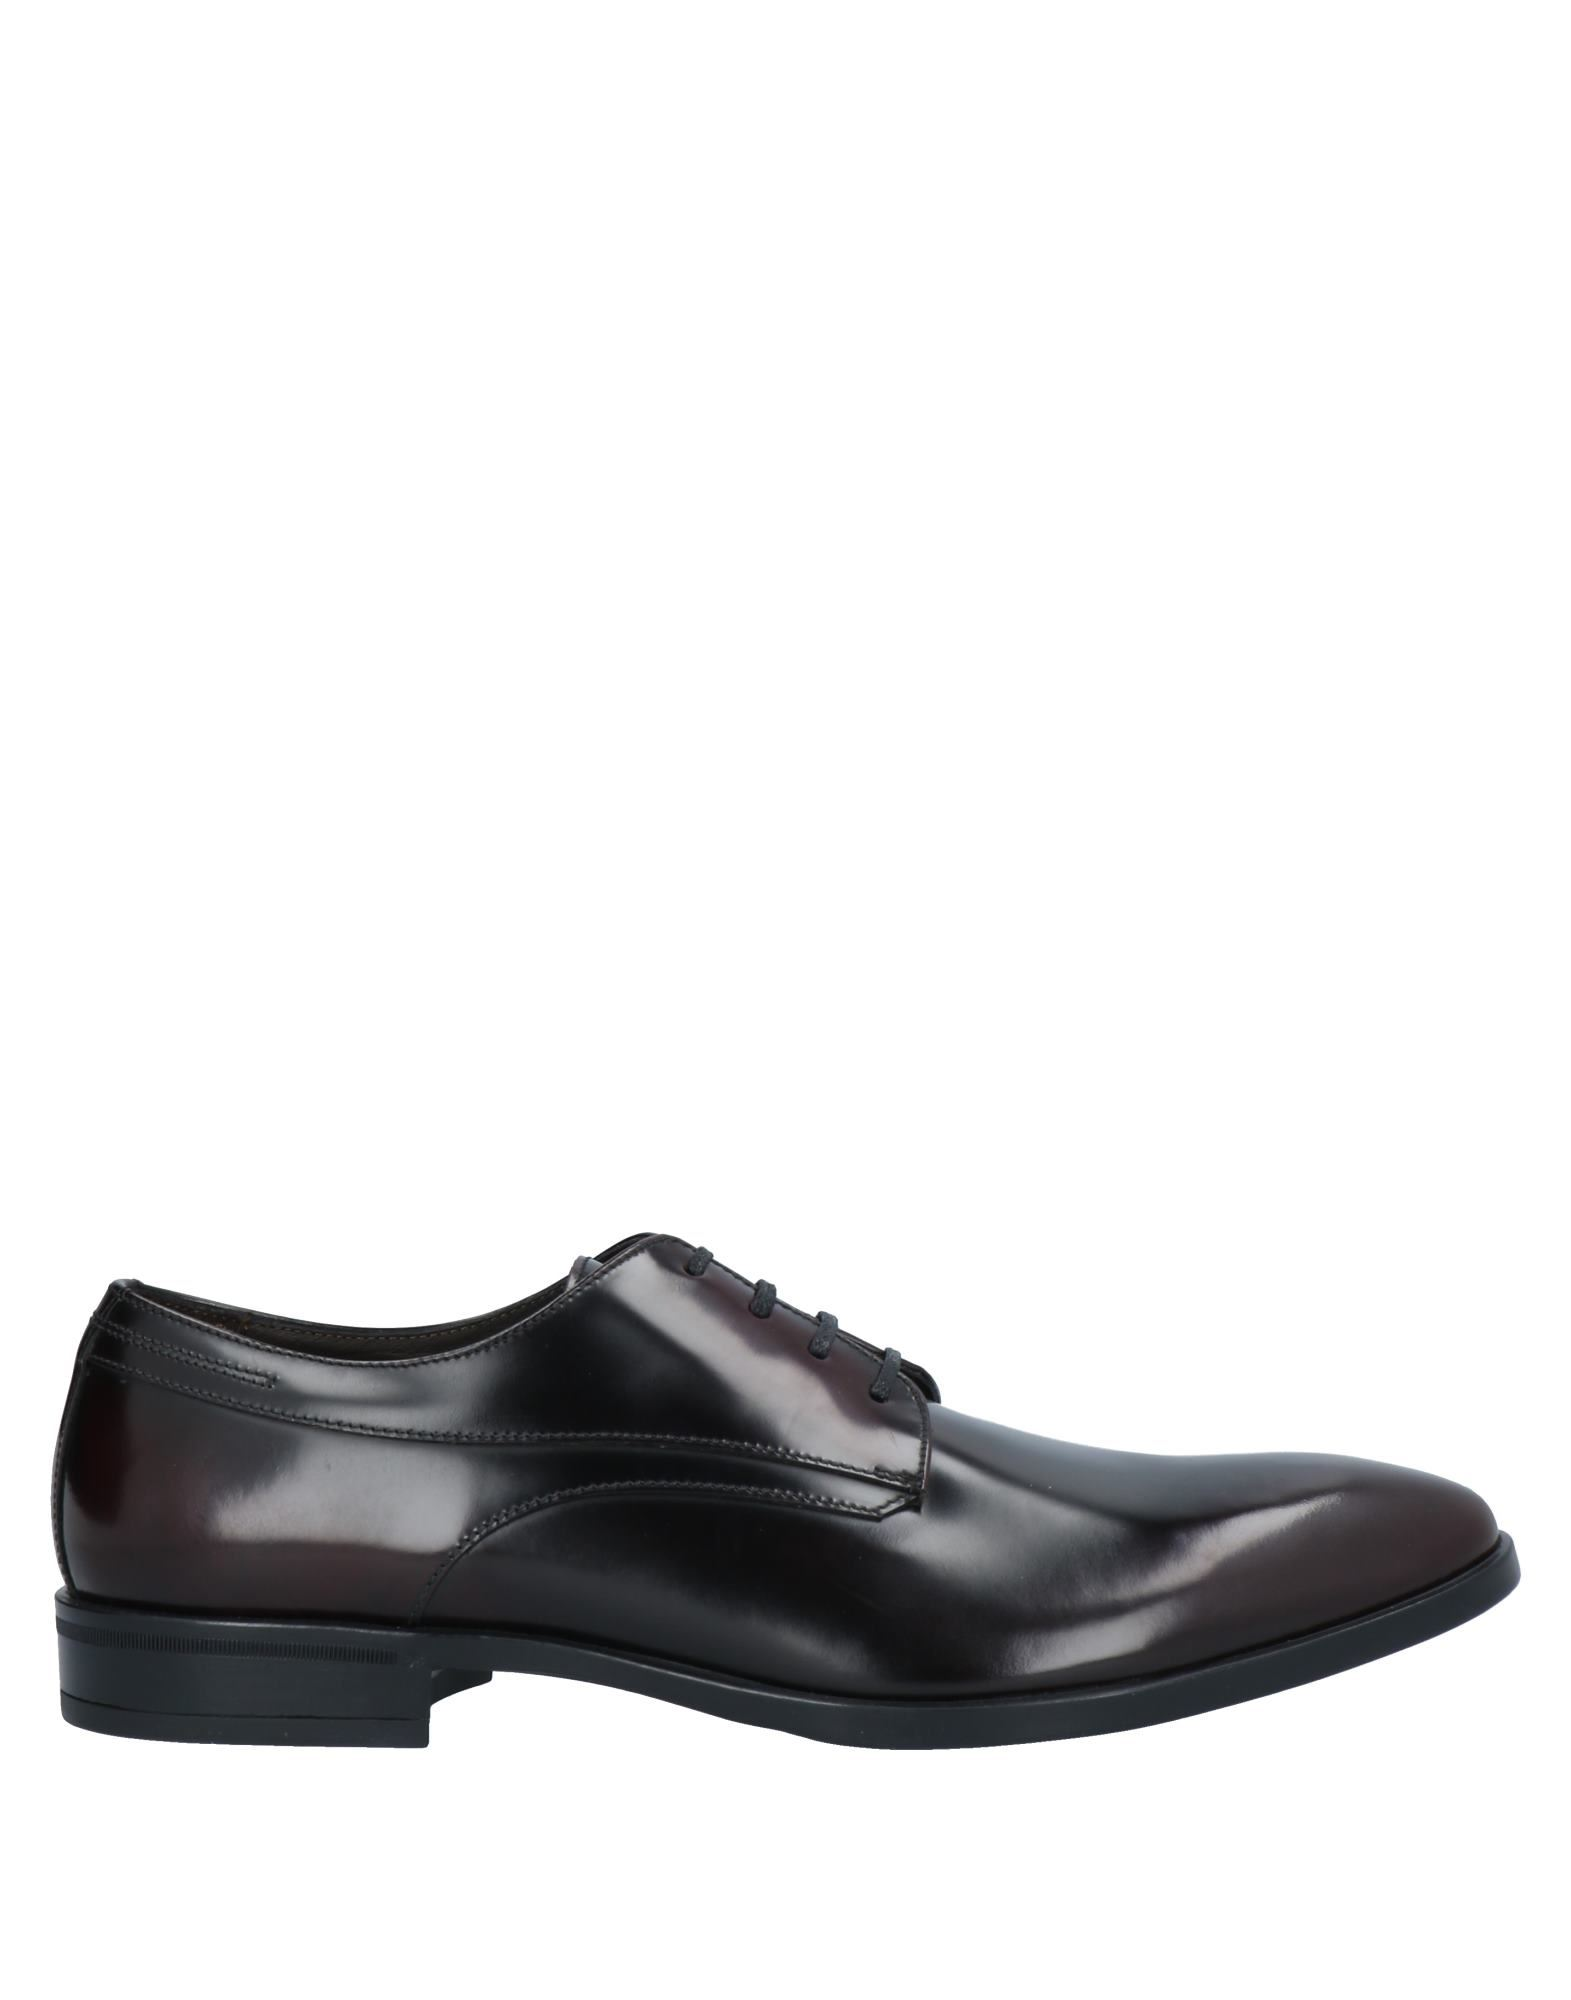 A.testoni Lace-up Shoes In Maroon